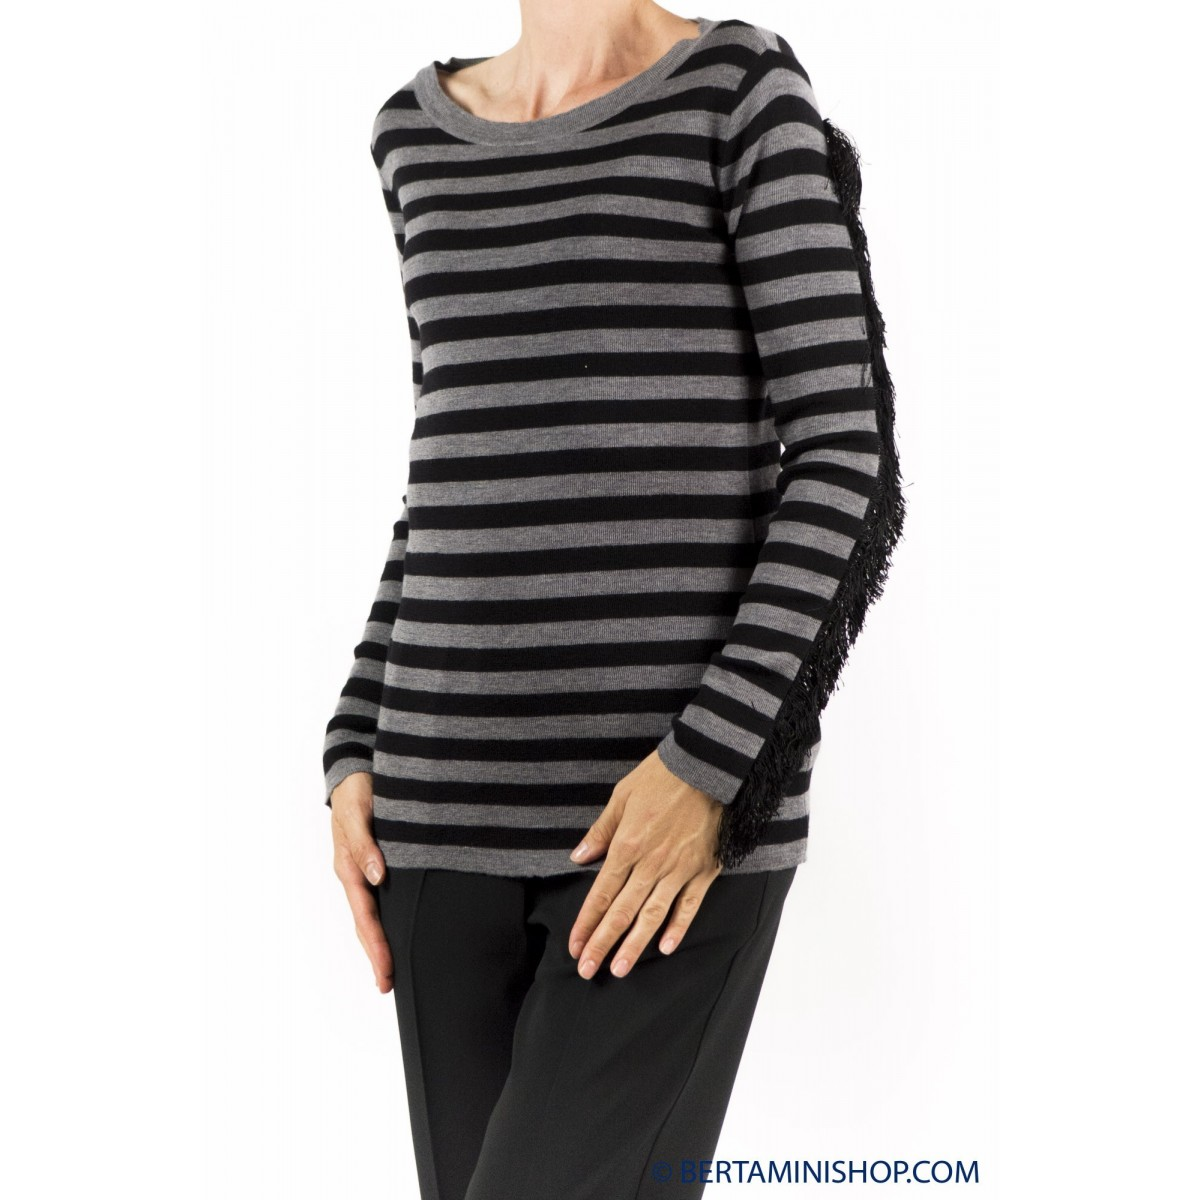 Jumper Jucca Woman - 1009